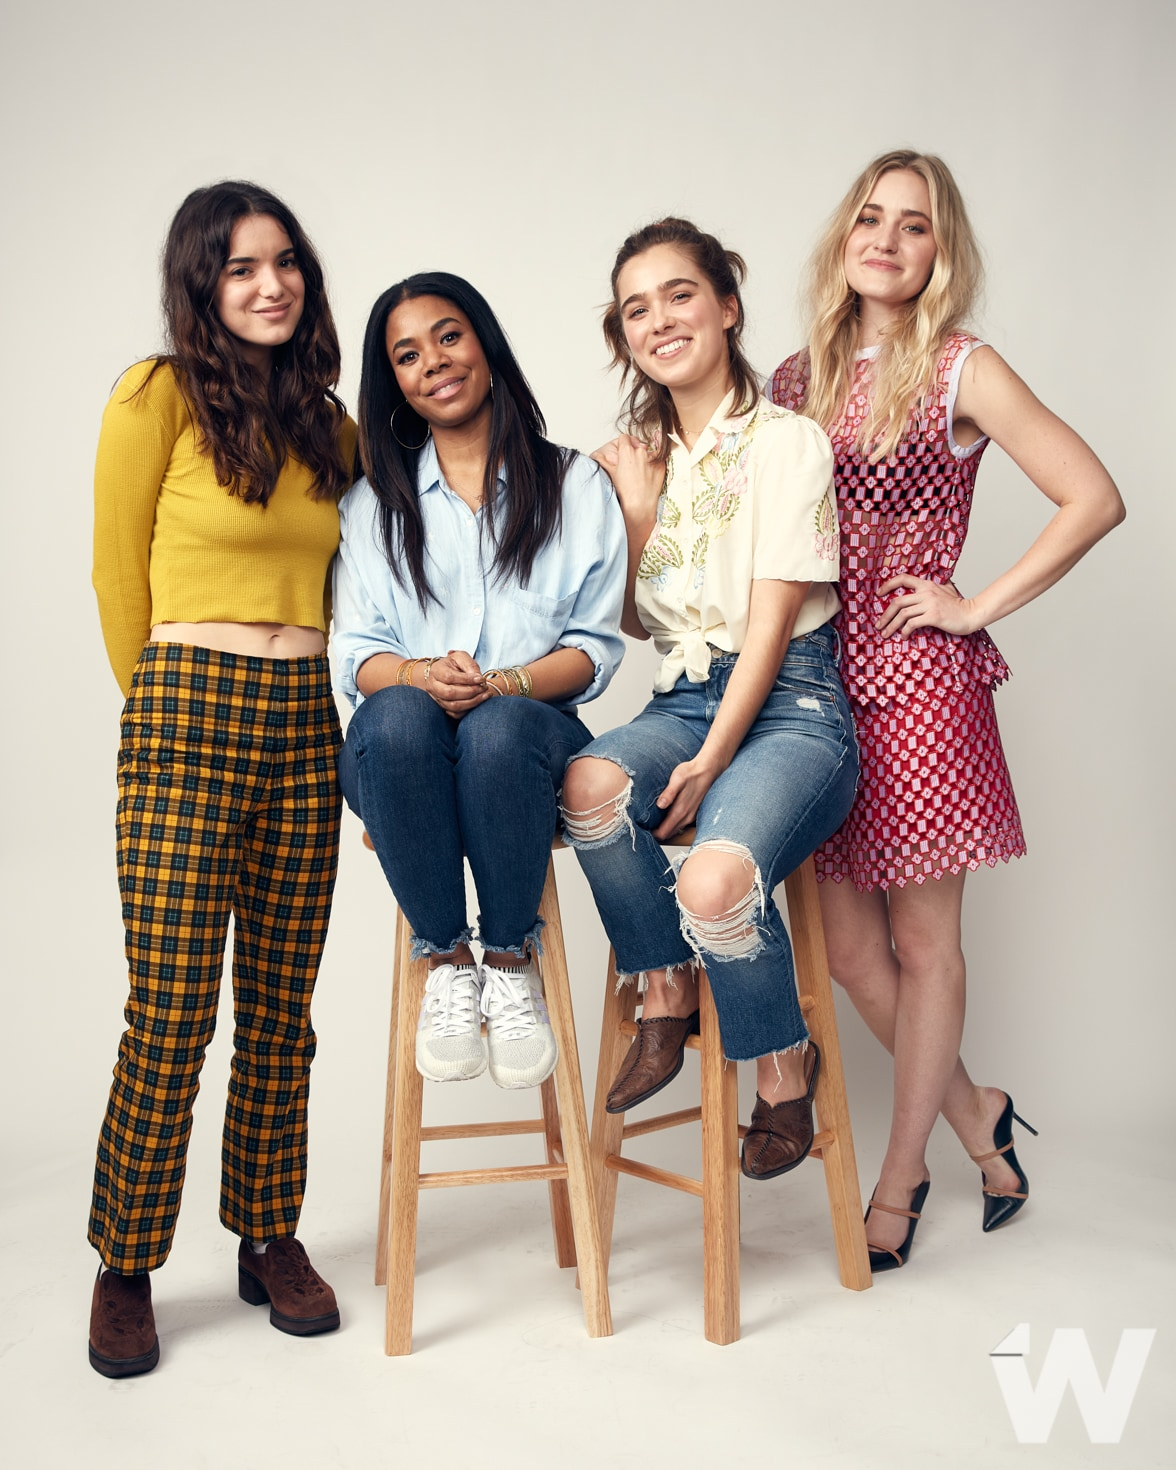 SXSW 2018 Support the Girls Dylan Gelula, Regina Hall, Haley Lu Richardson, AJ Michalca